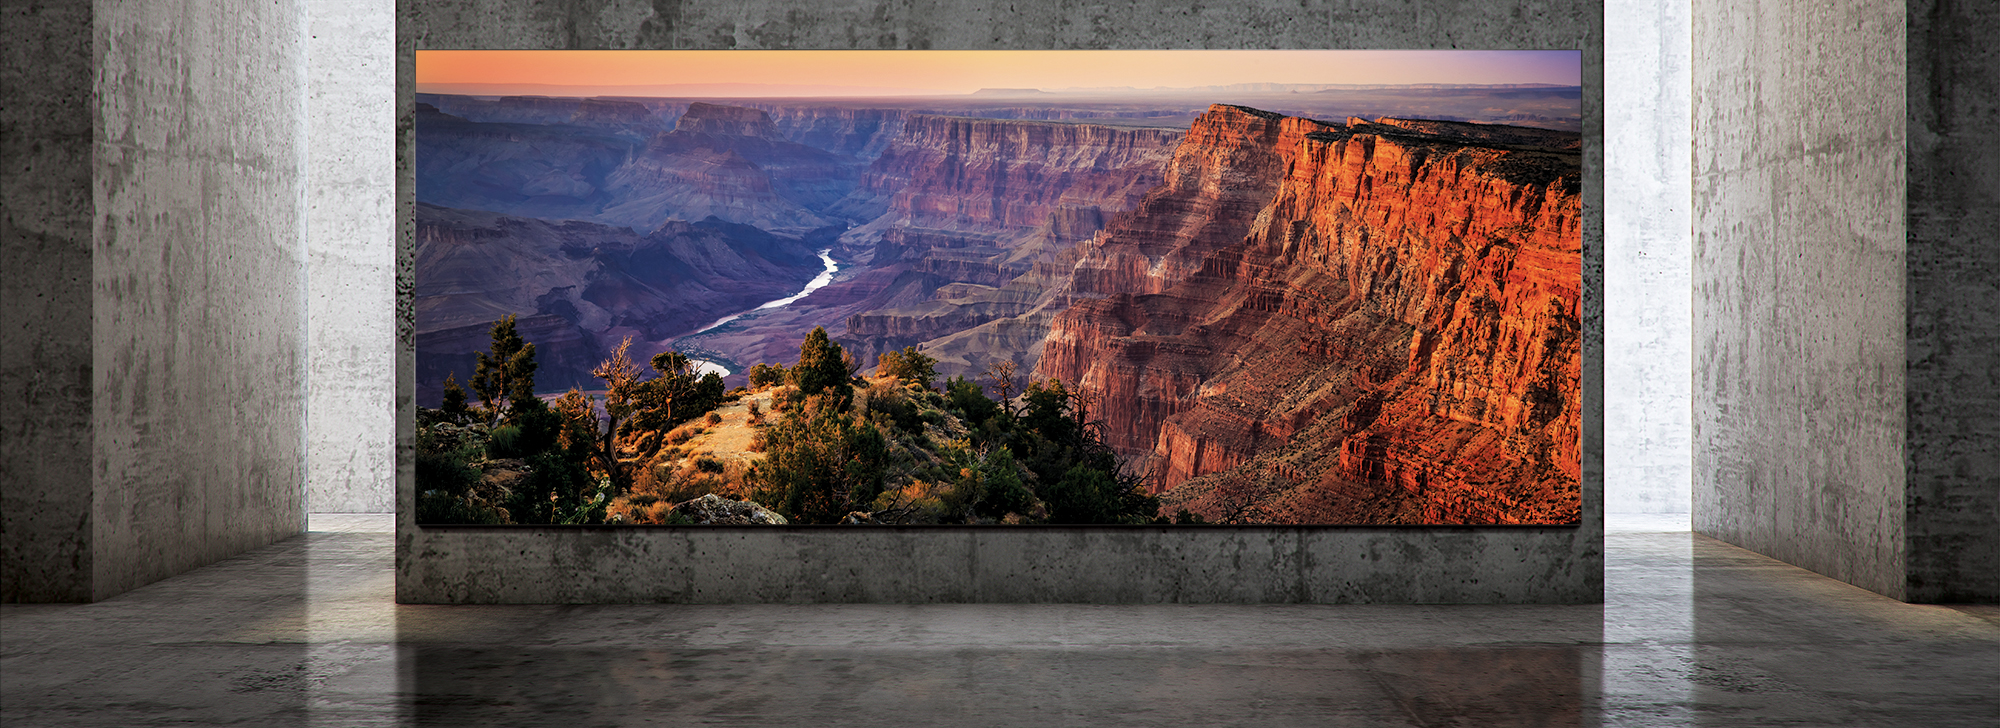 Samsung Wall Luxury TV 292-inch